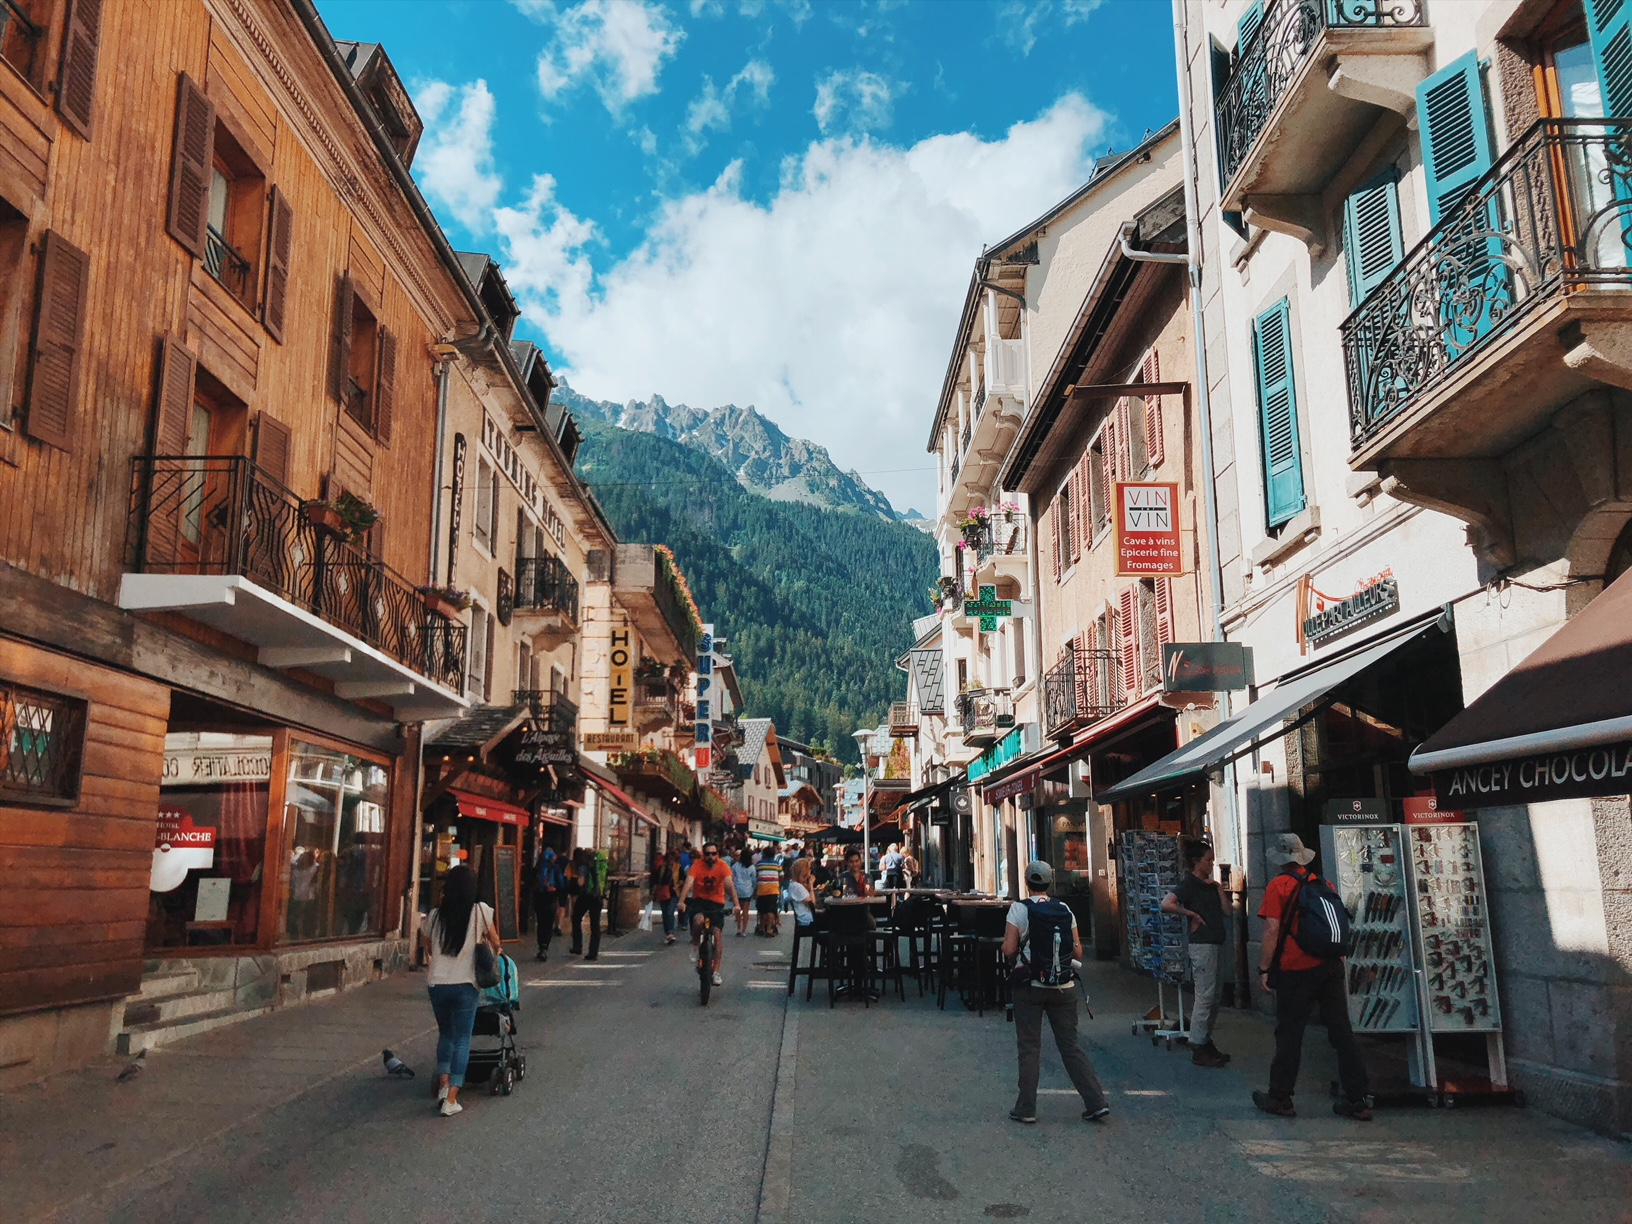 Chamonix downtown